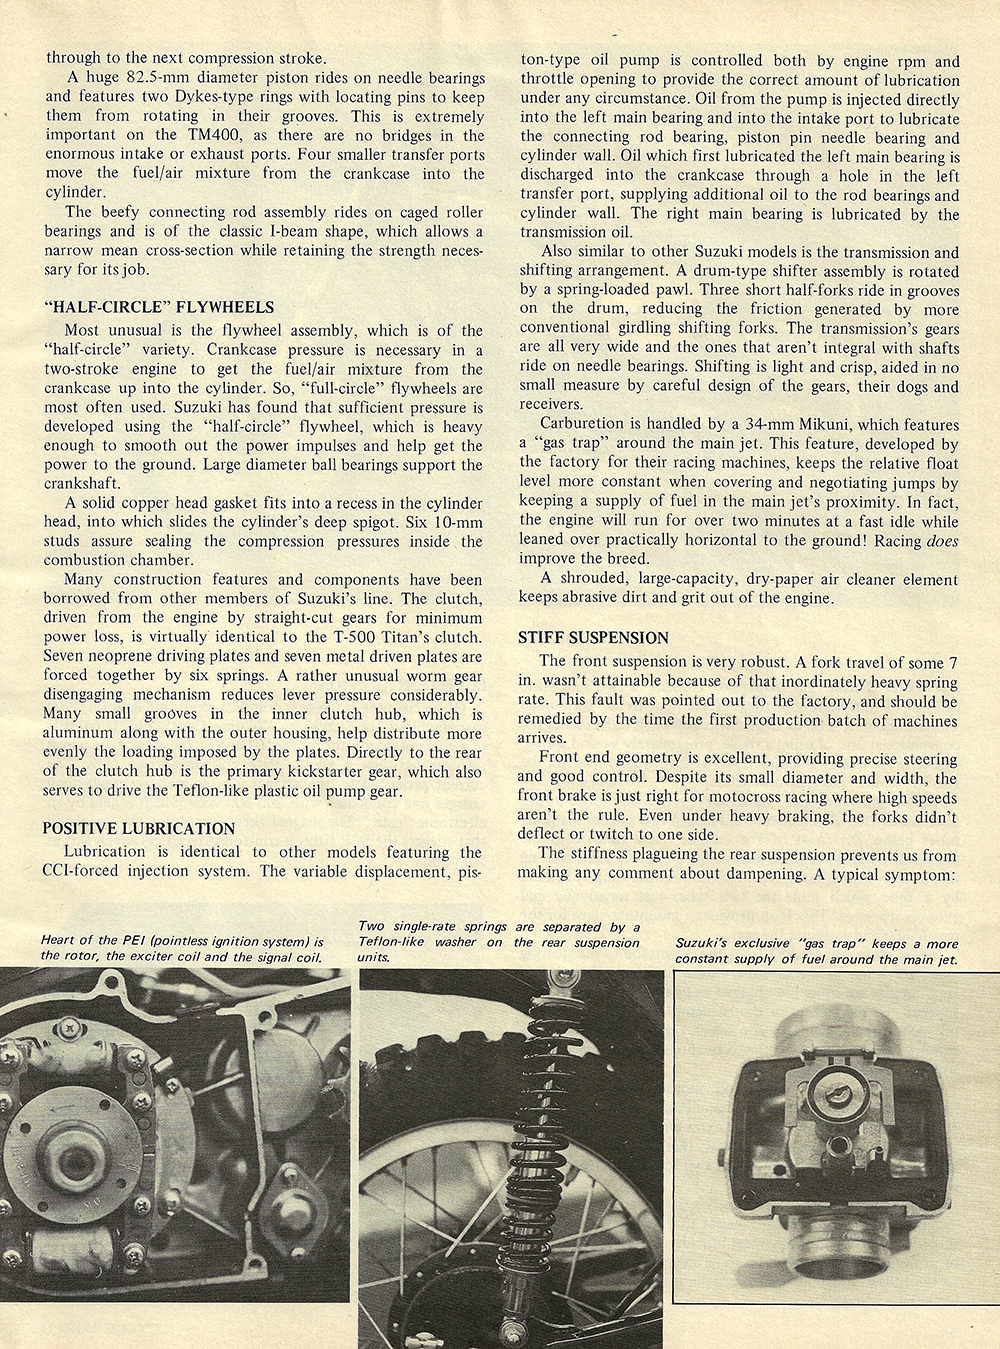 1971 Suzuki TM400R road test 03.jpg